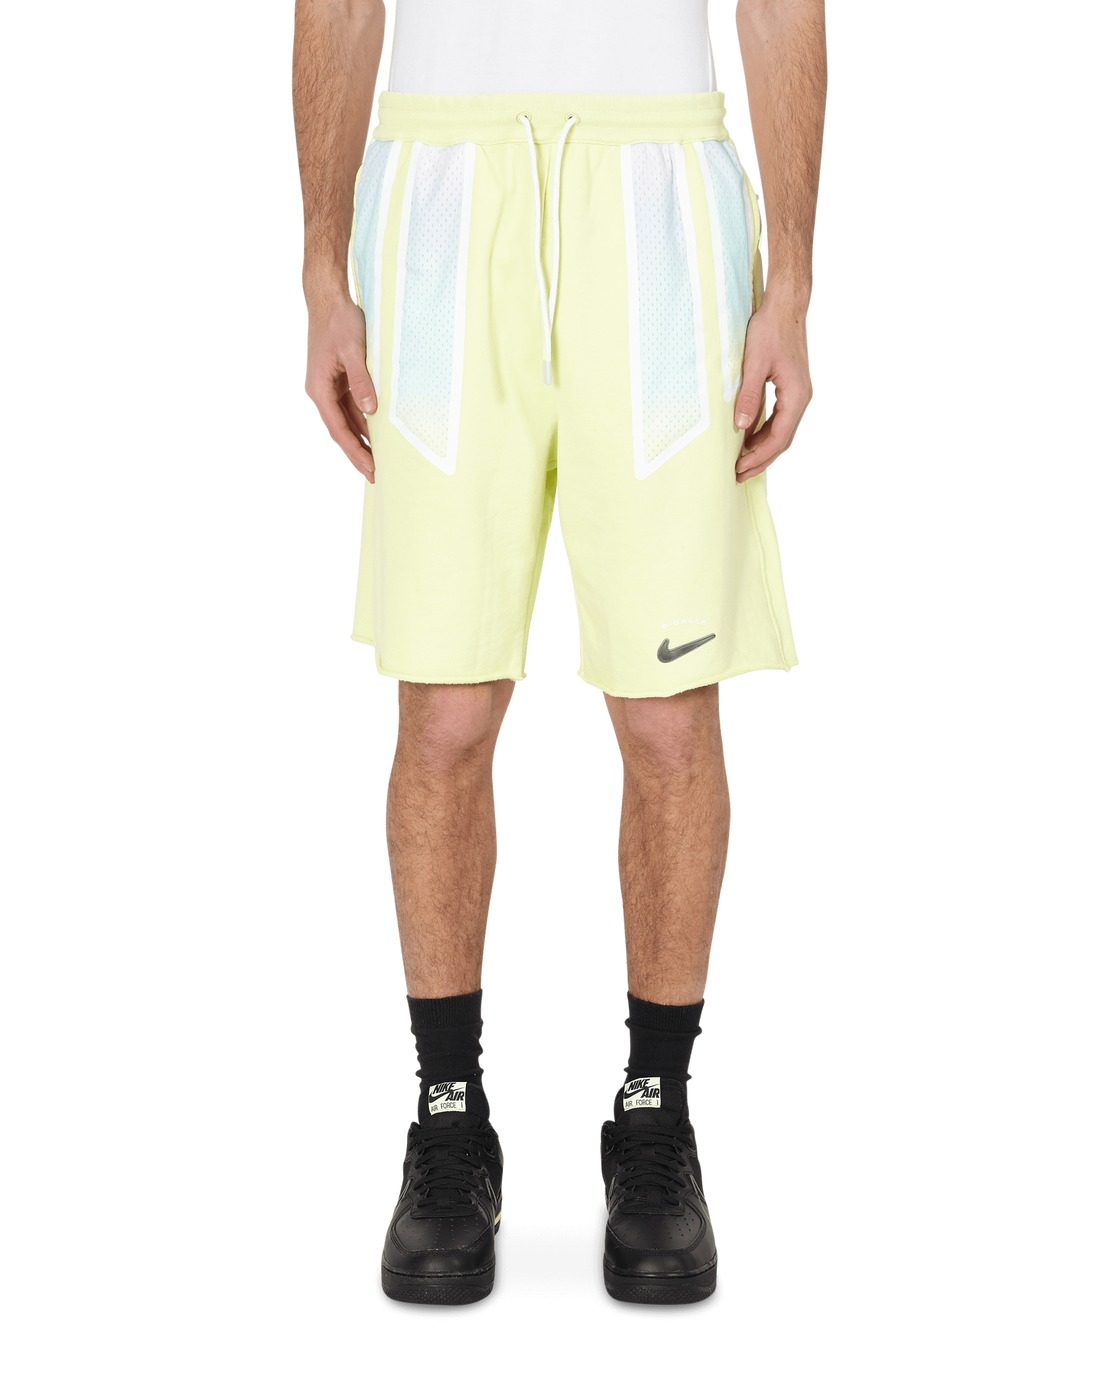 Nike Special Project Pigalle Shorts Luminous Green